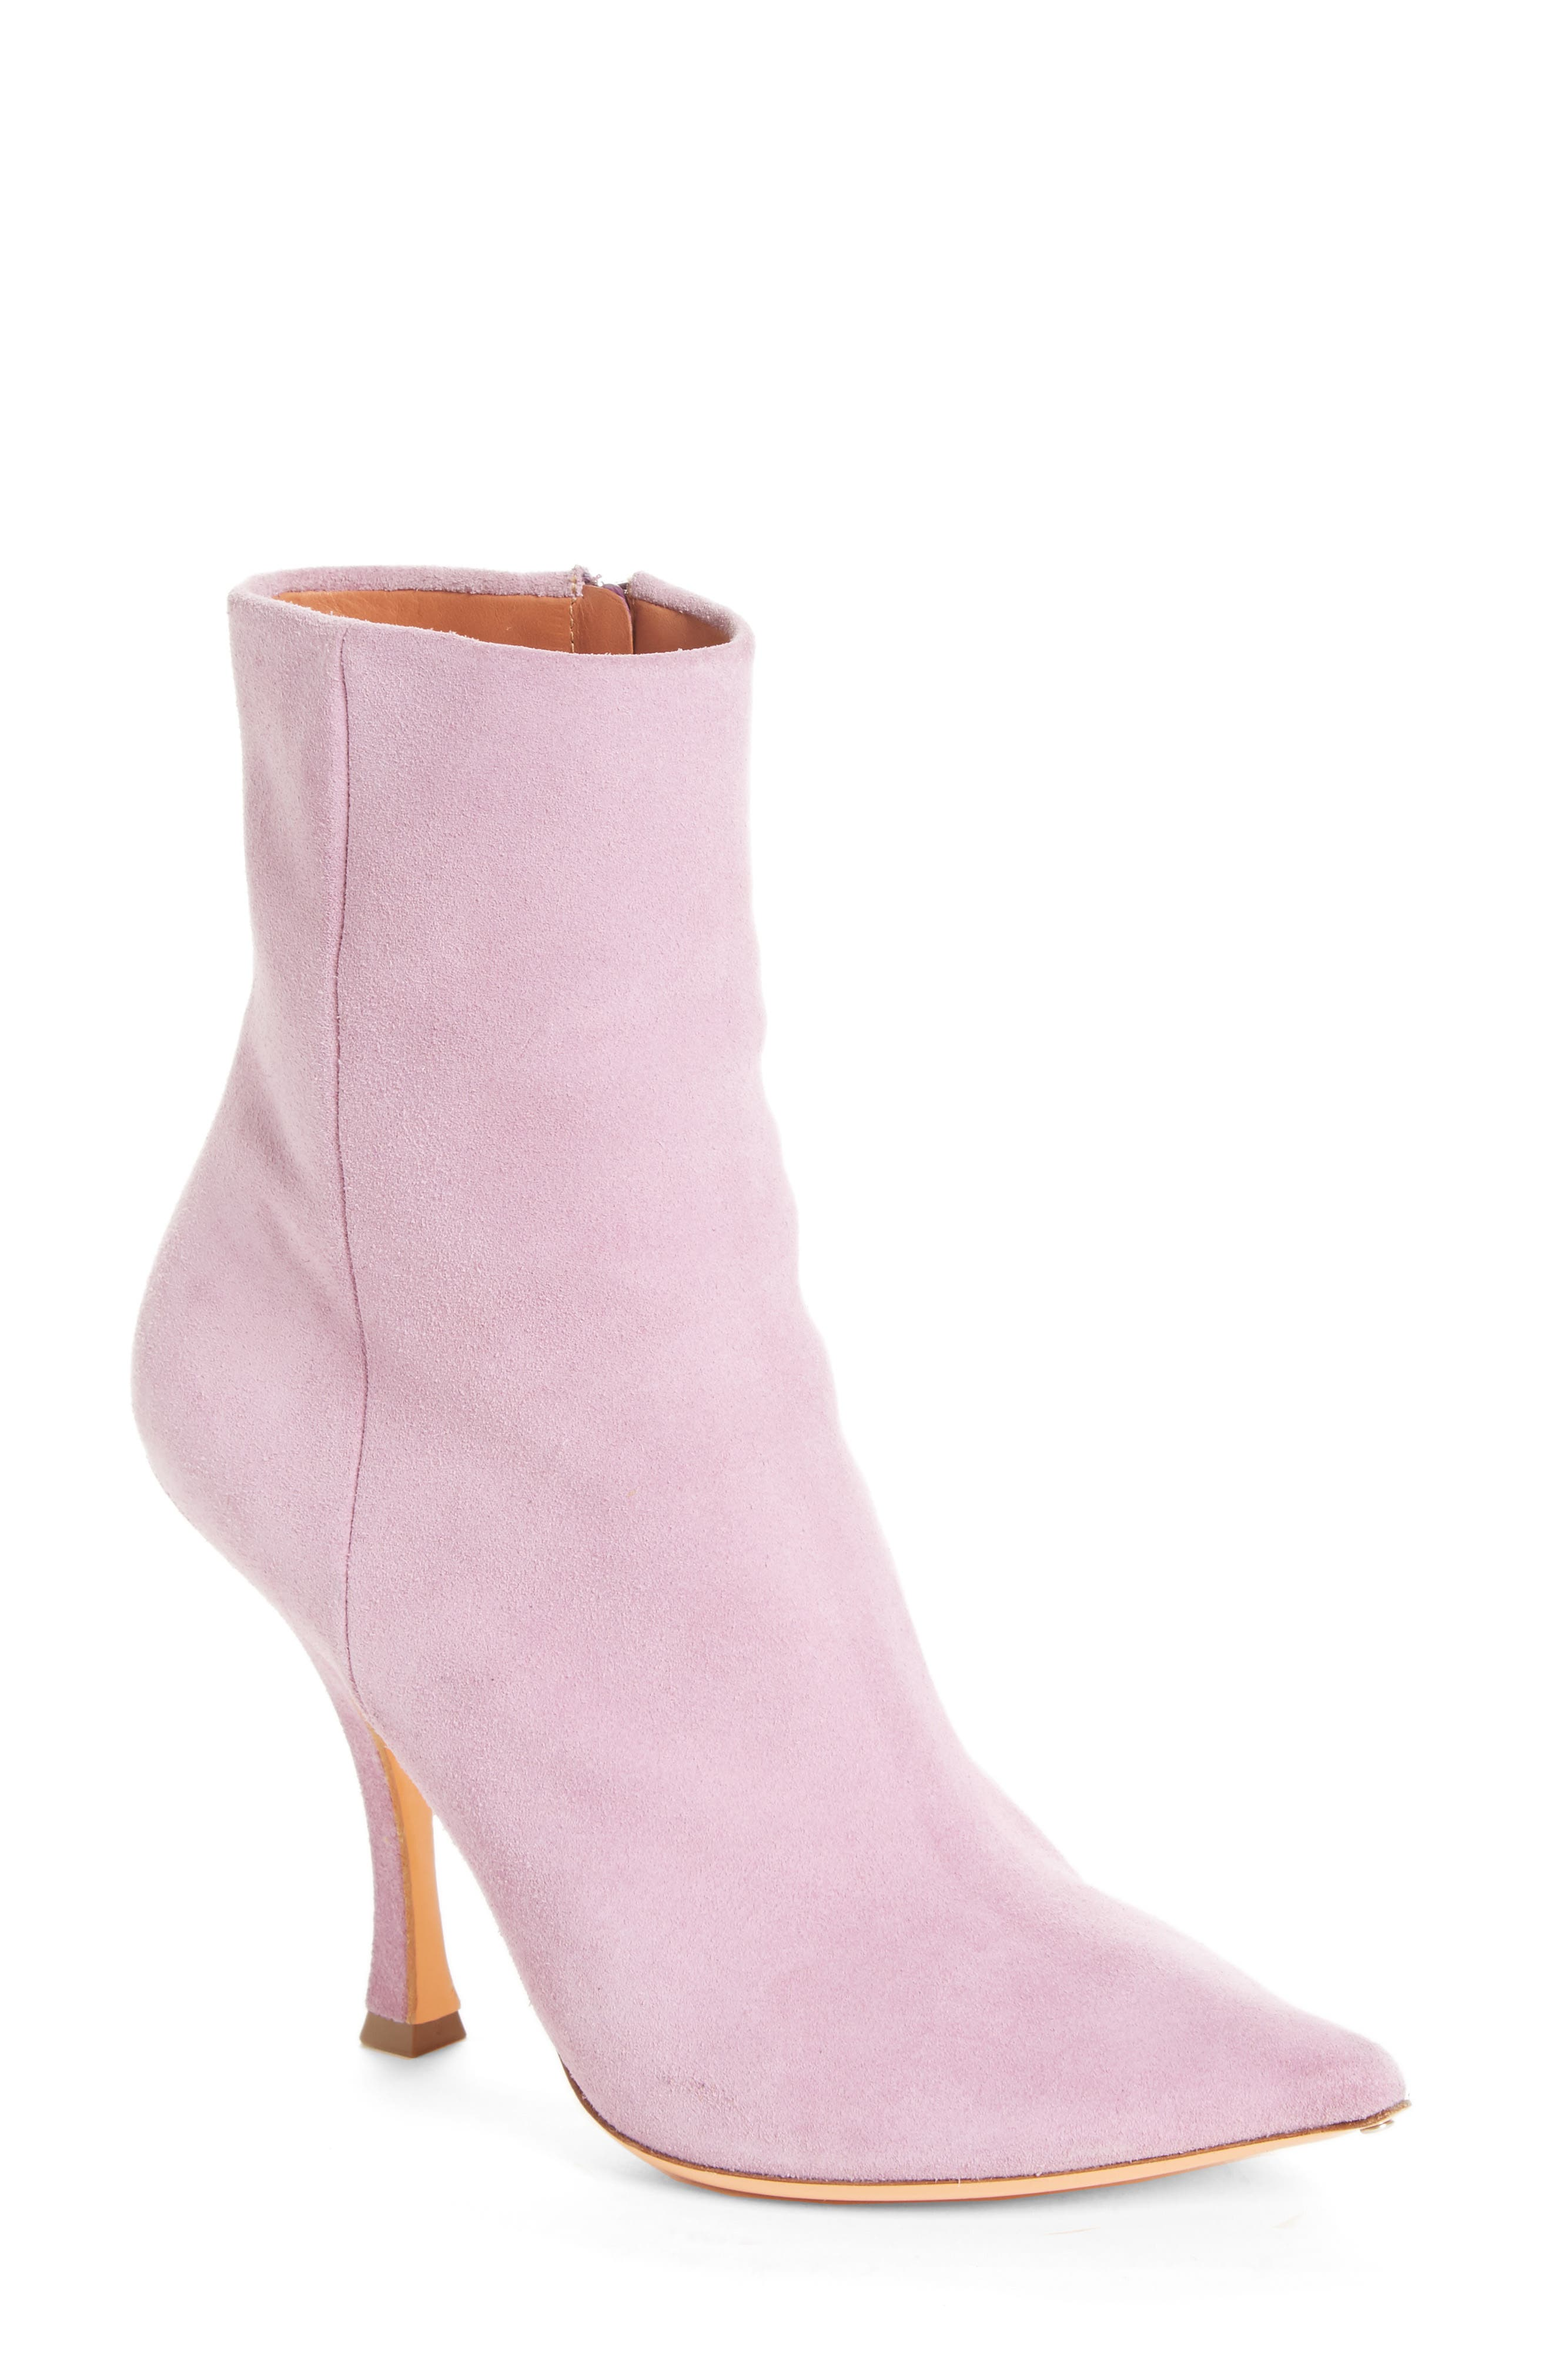 Suede Ankle Boot,                             Main thumbnail 1, color,                             500